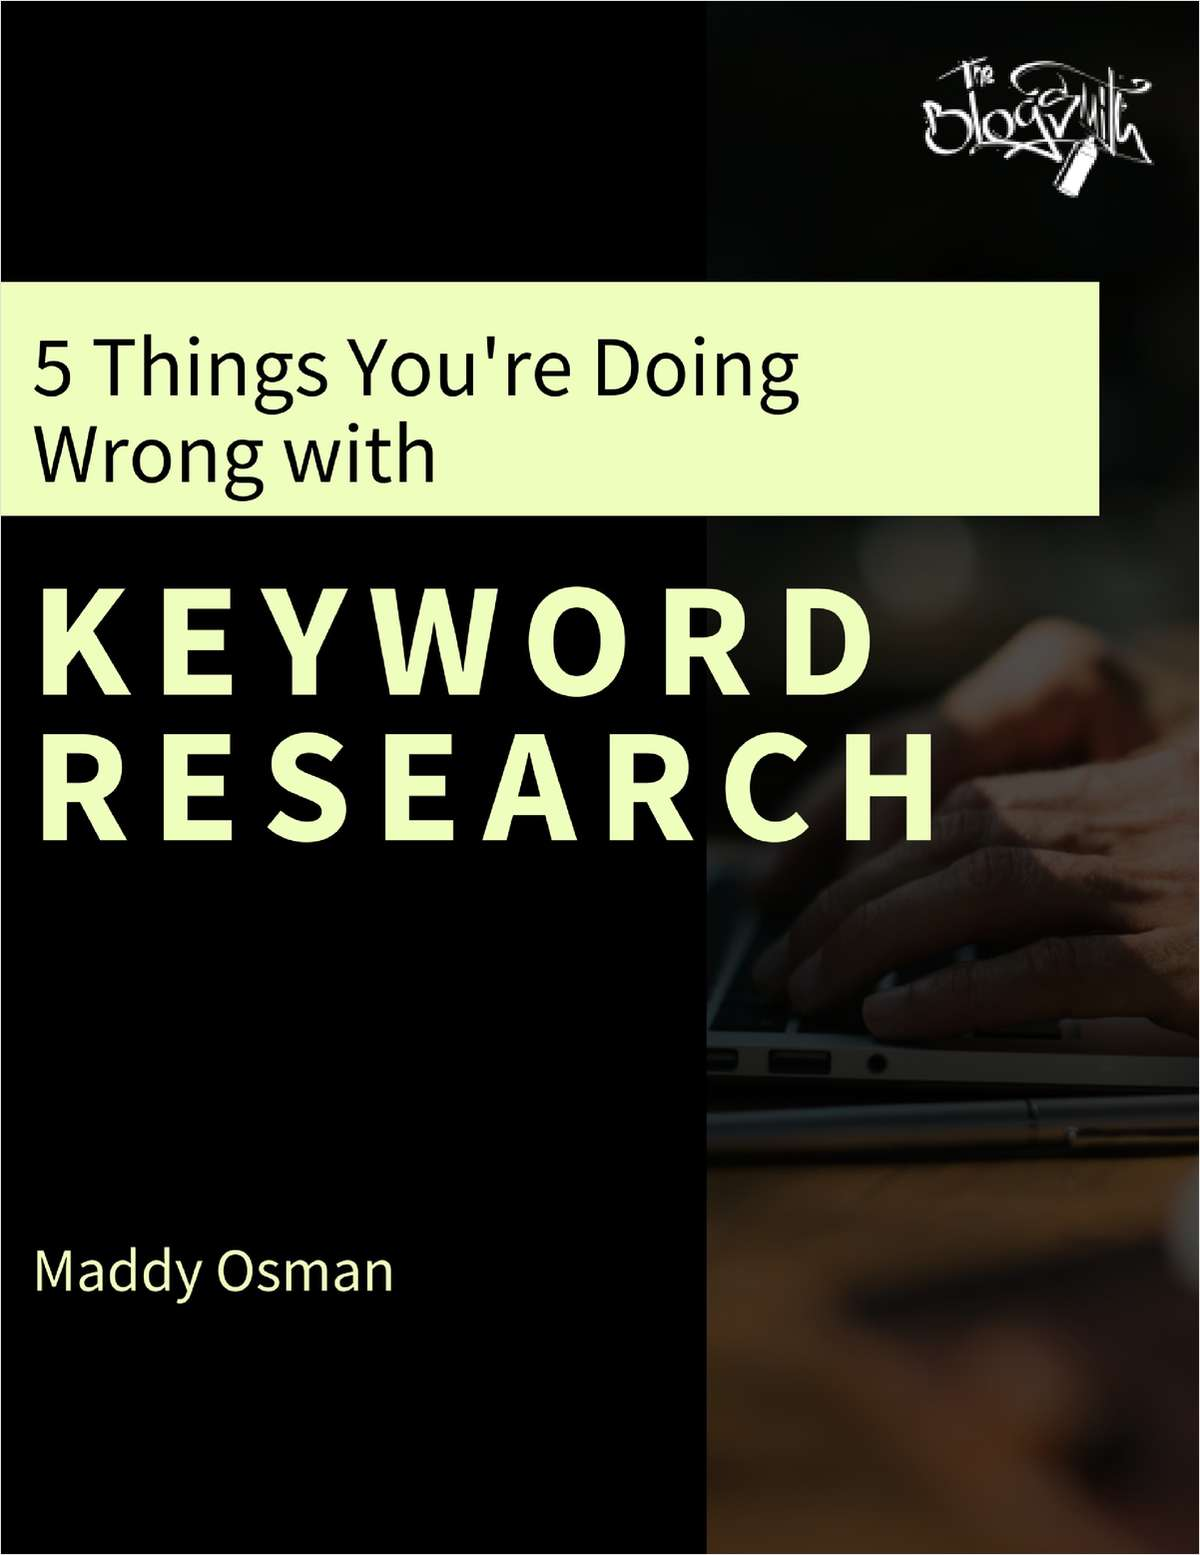 5 Things You're Doing Wrong with Keyword Research